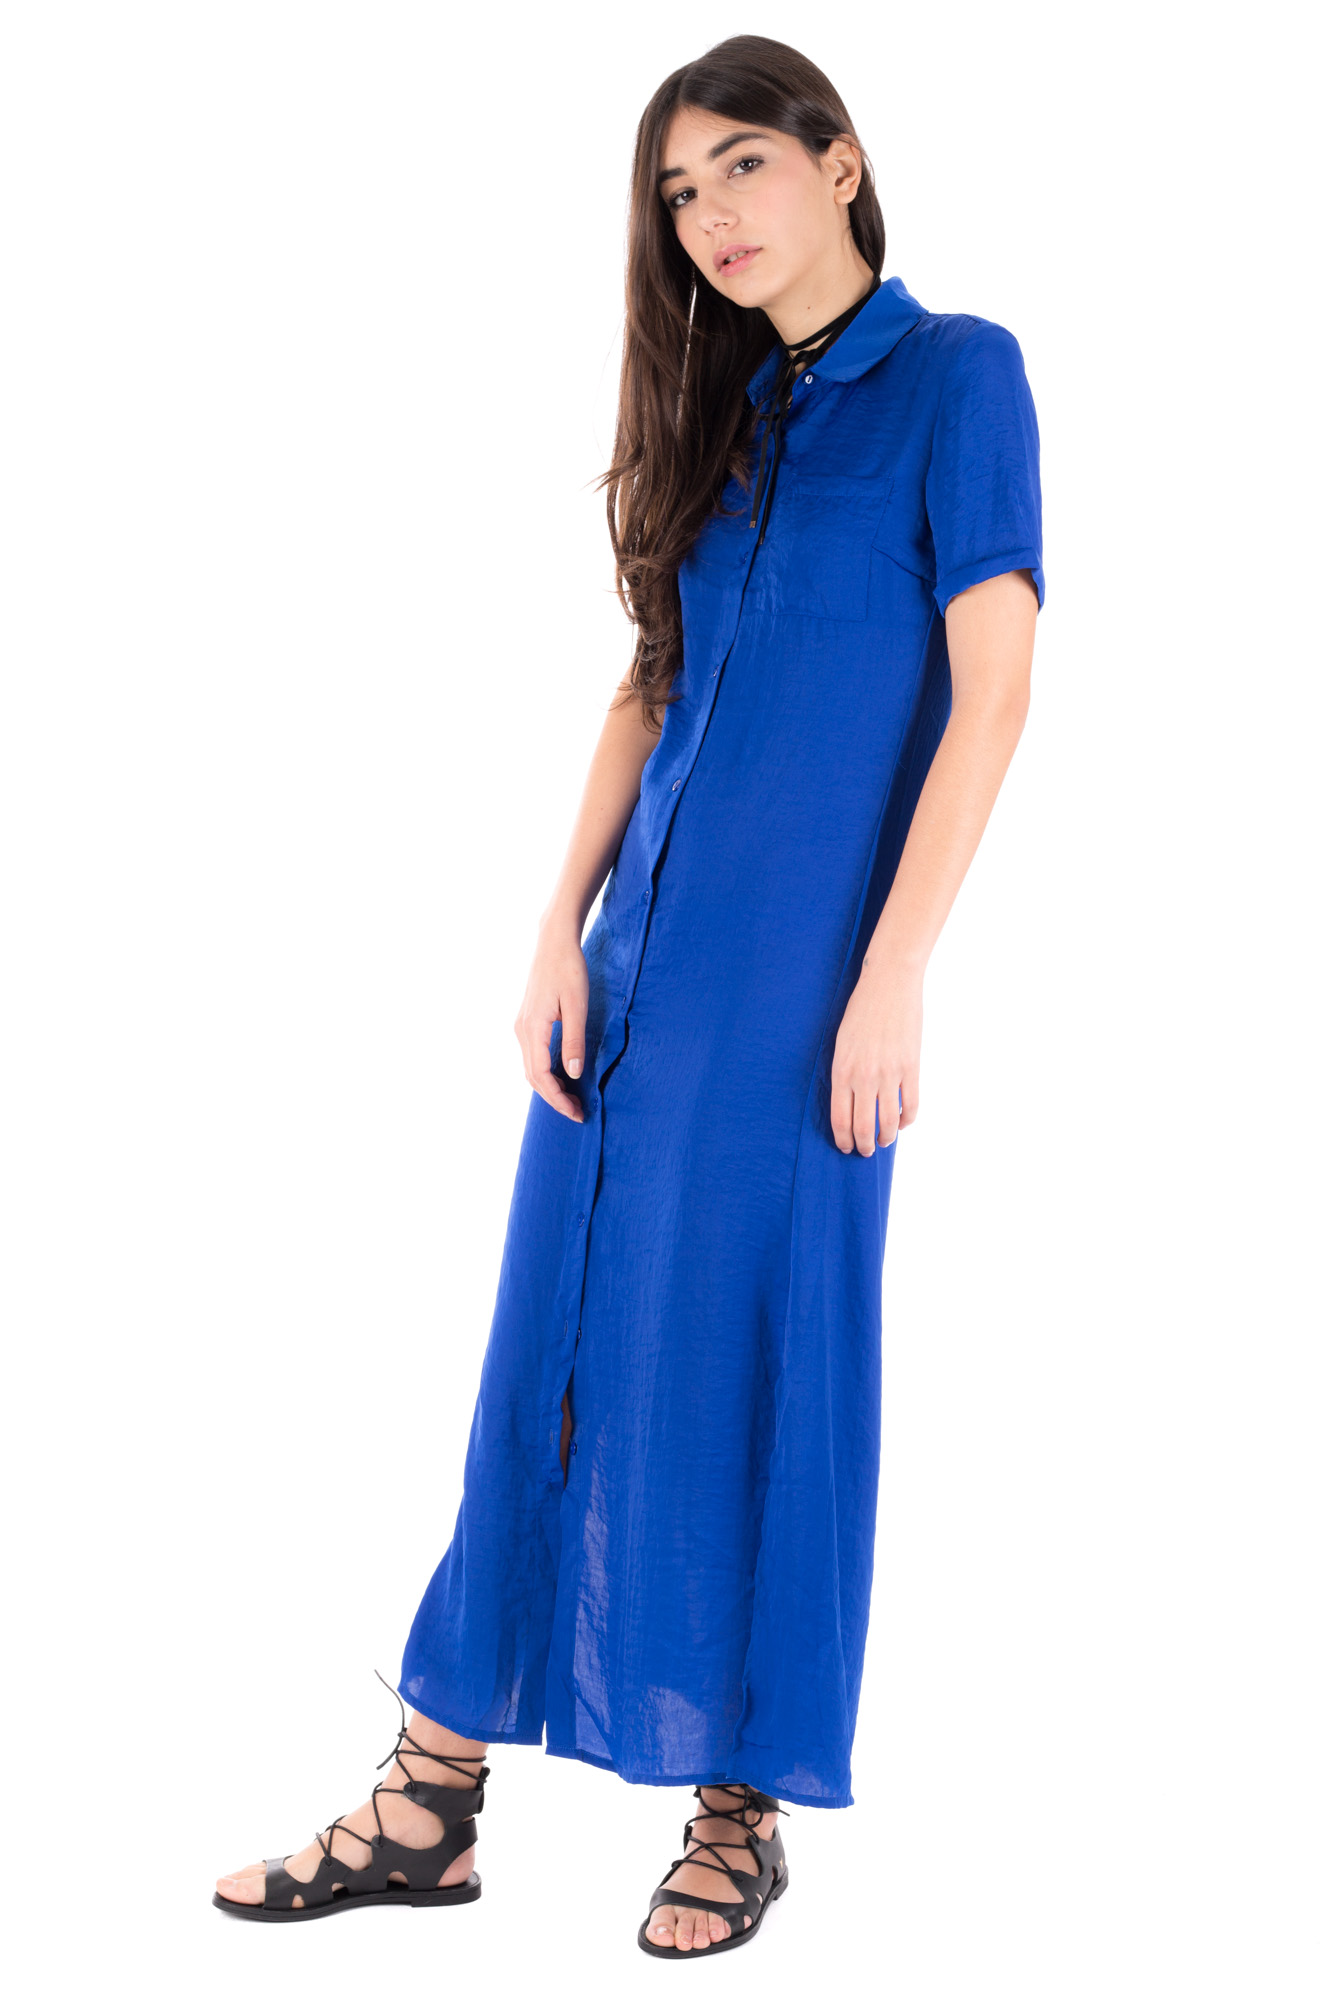 Glamorous - Long blue dress with front buttons